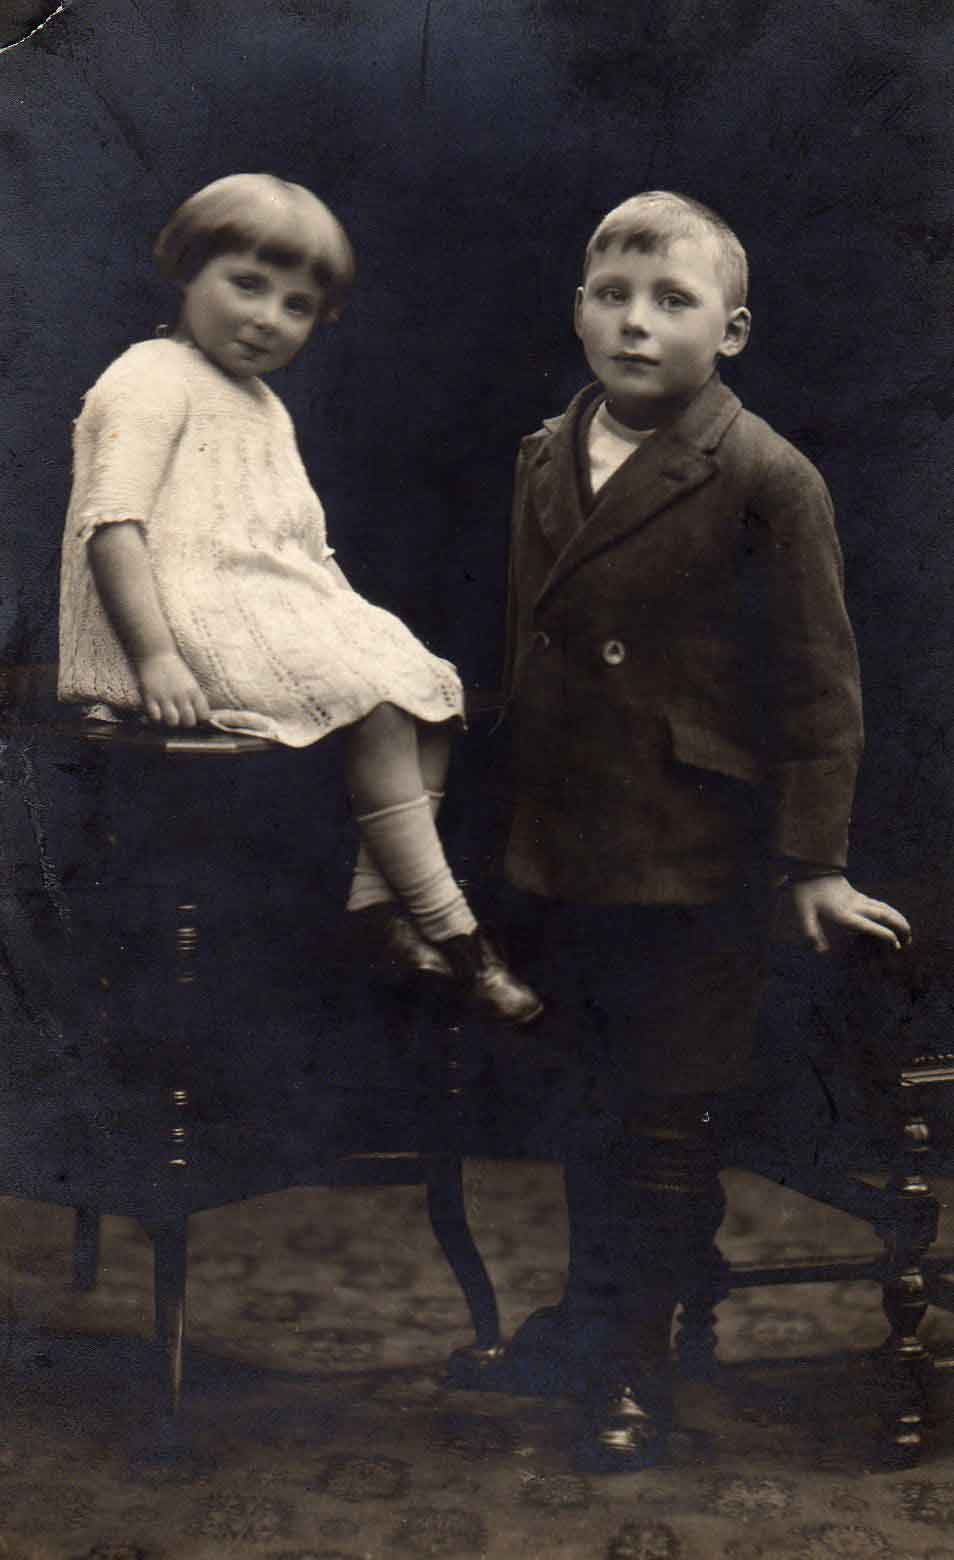 Photograph of two children posing for picture in 1920s